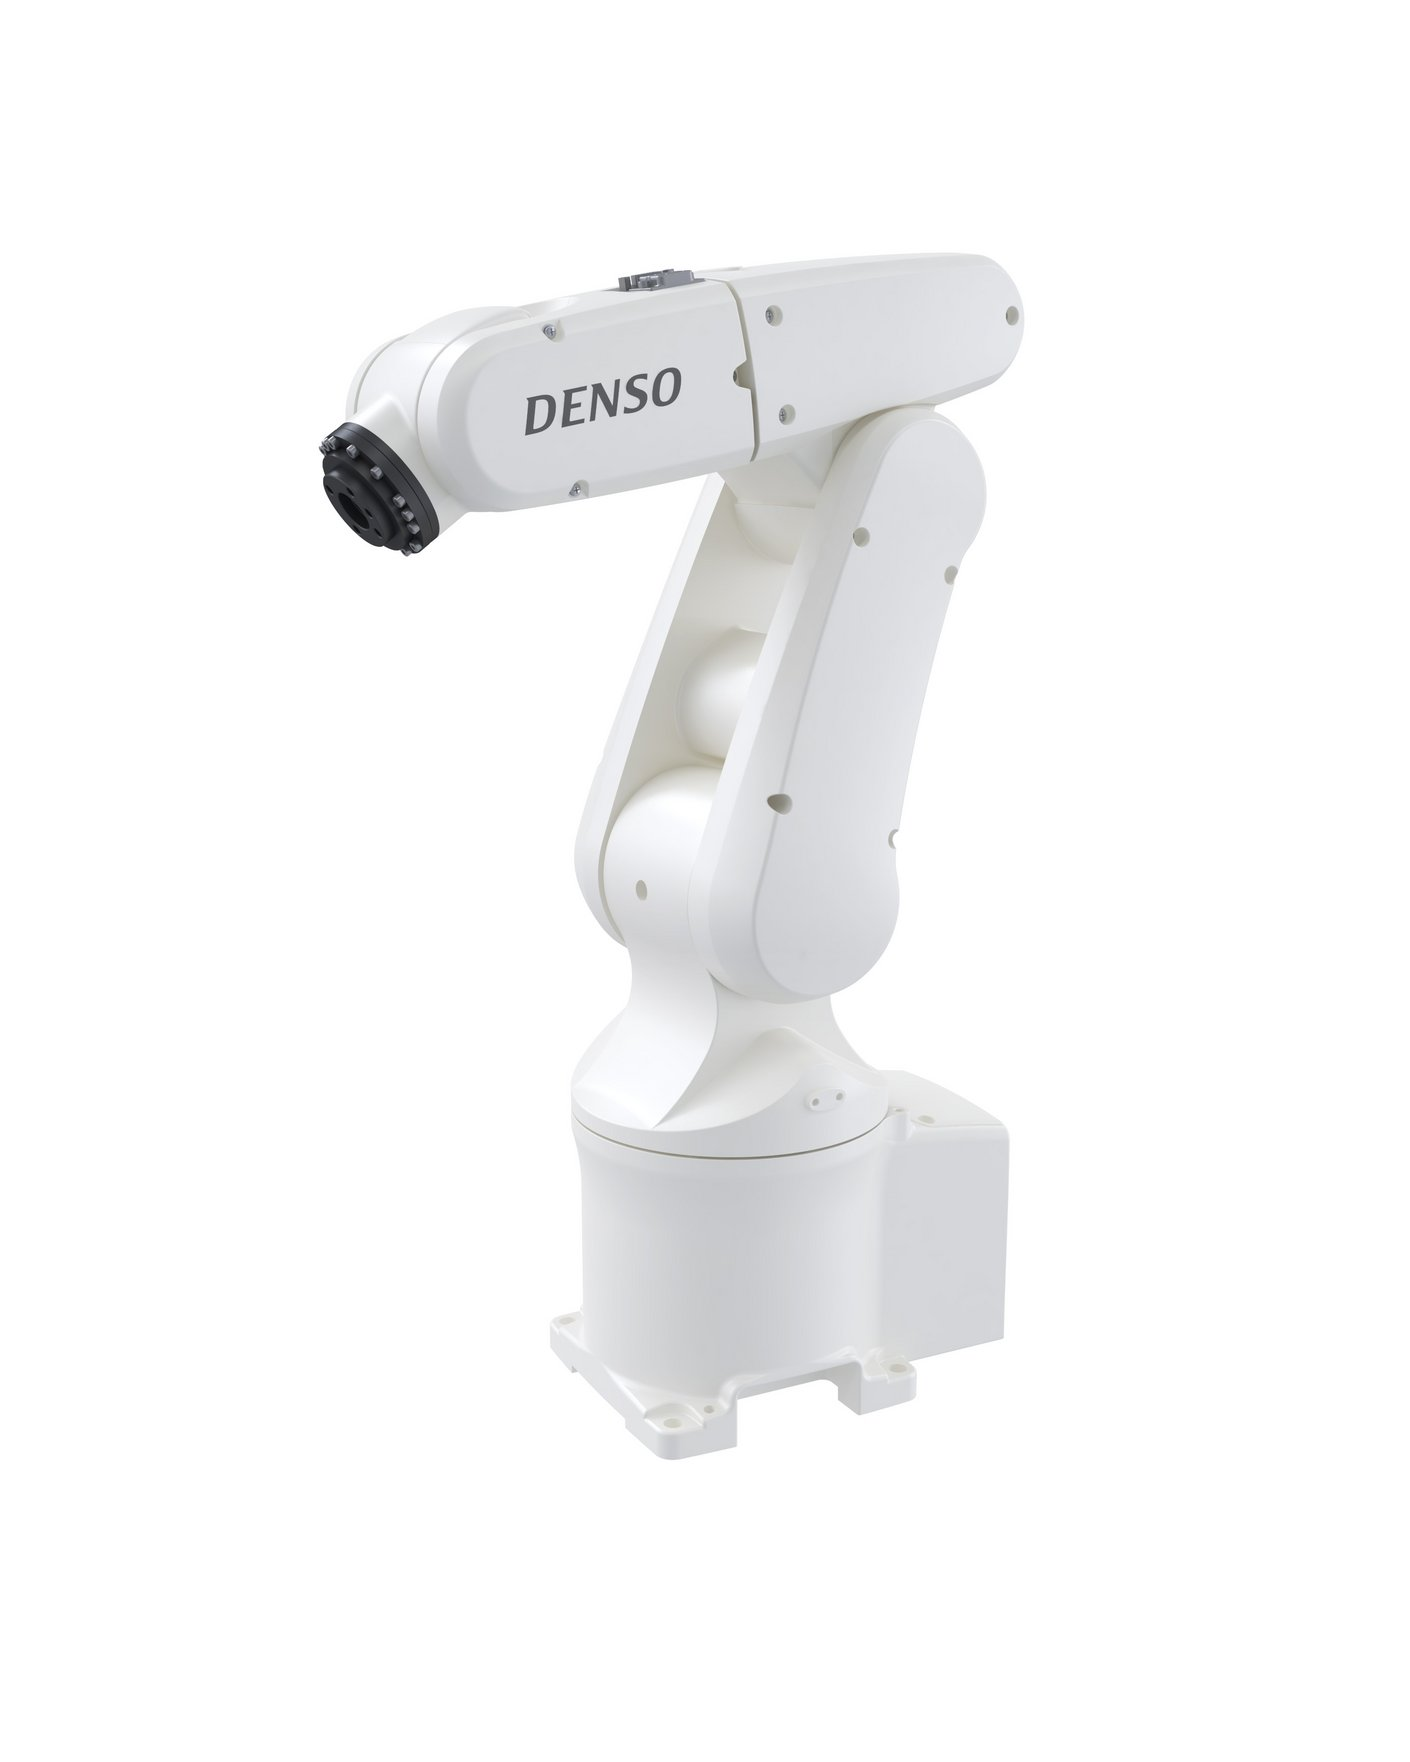 Robot VP-5243 / 6242: Industrial robot for medical, robot for electronics, robot for handling | DENSO Robotics Europe